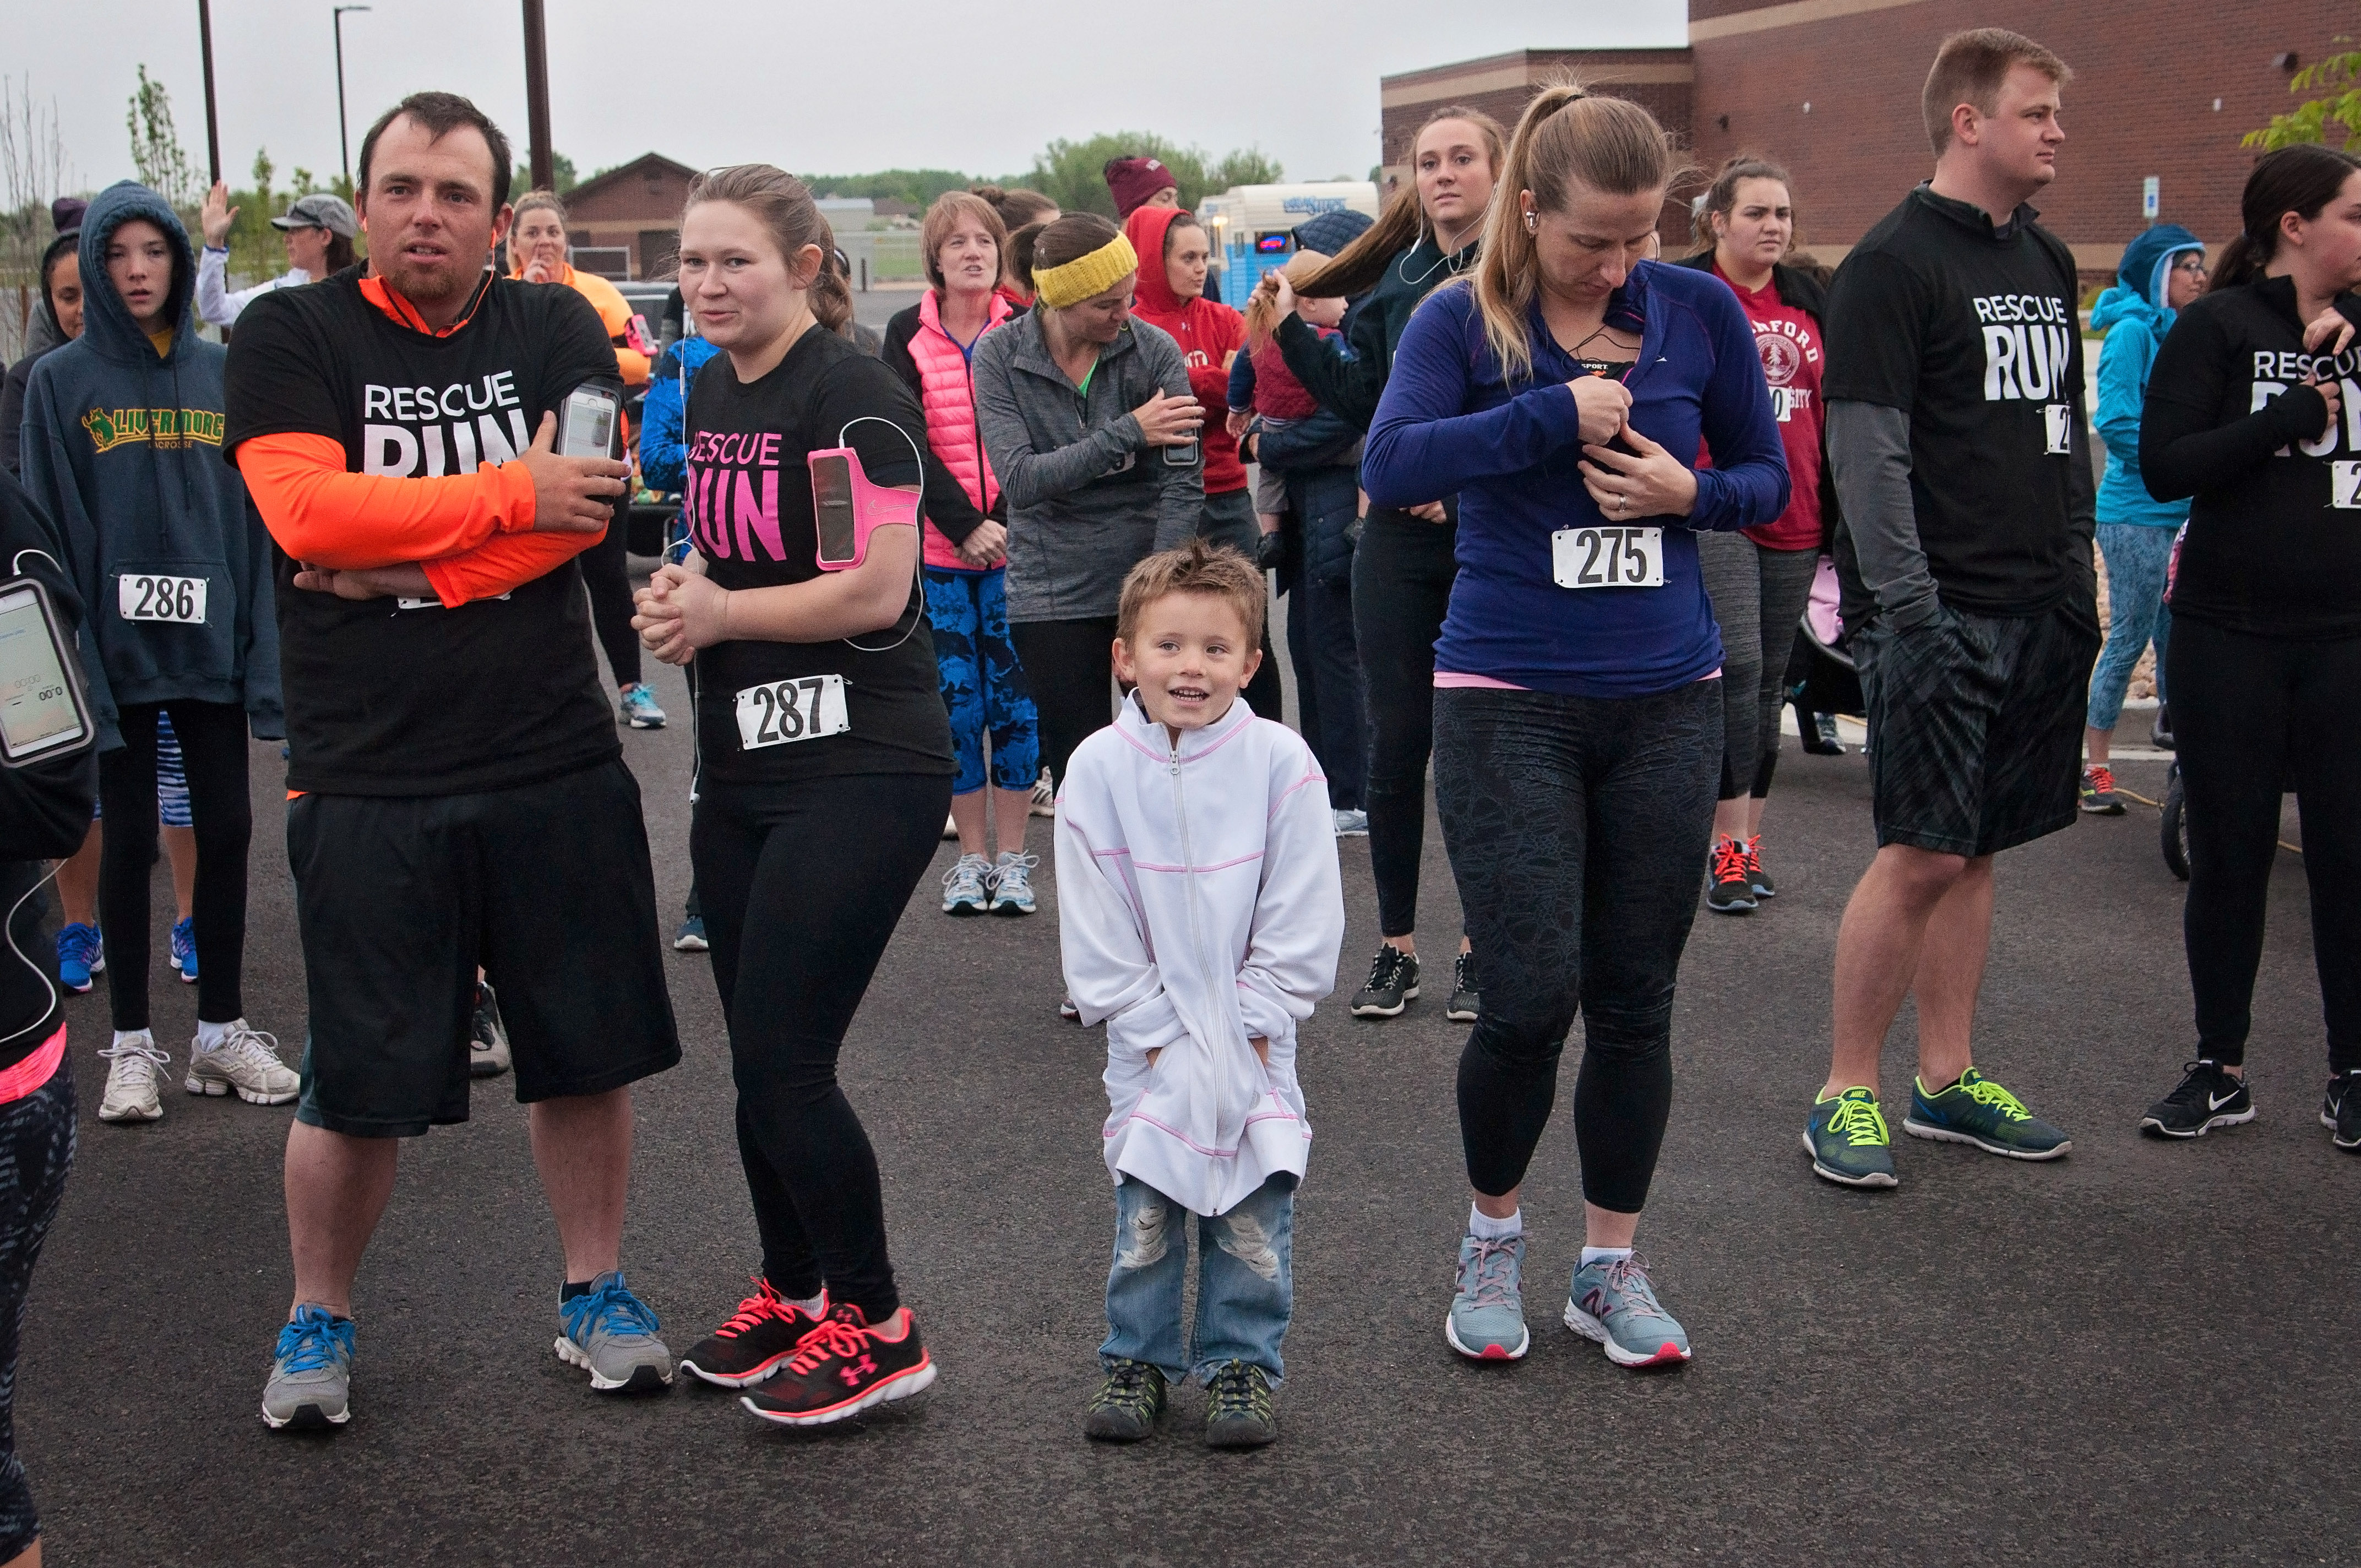 How much does it cost to throw a 5k?